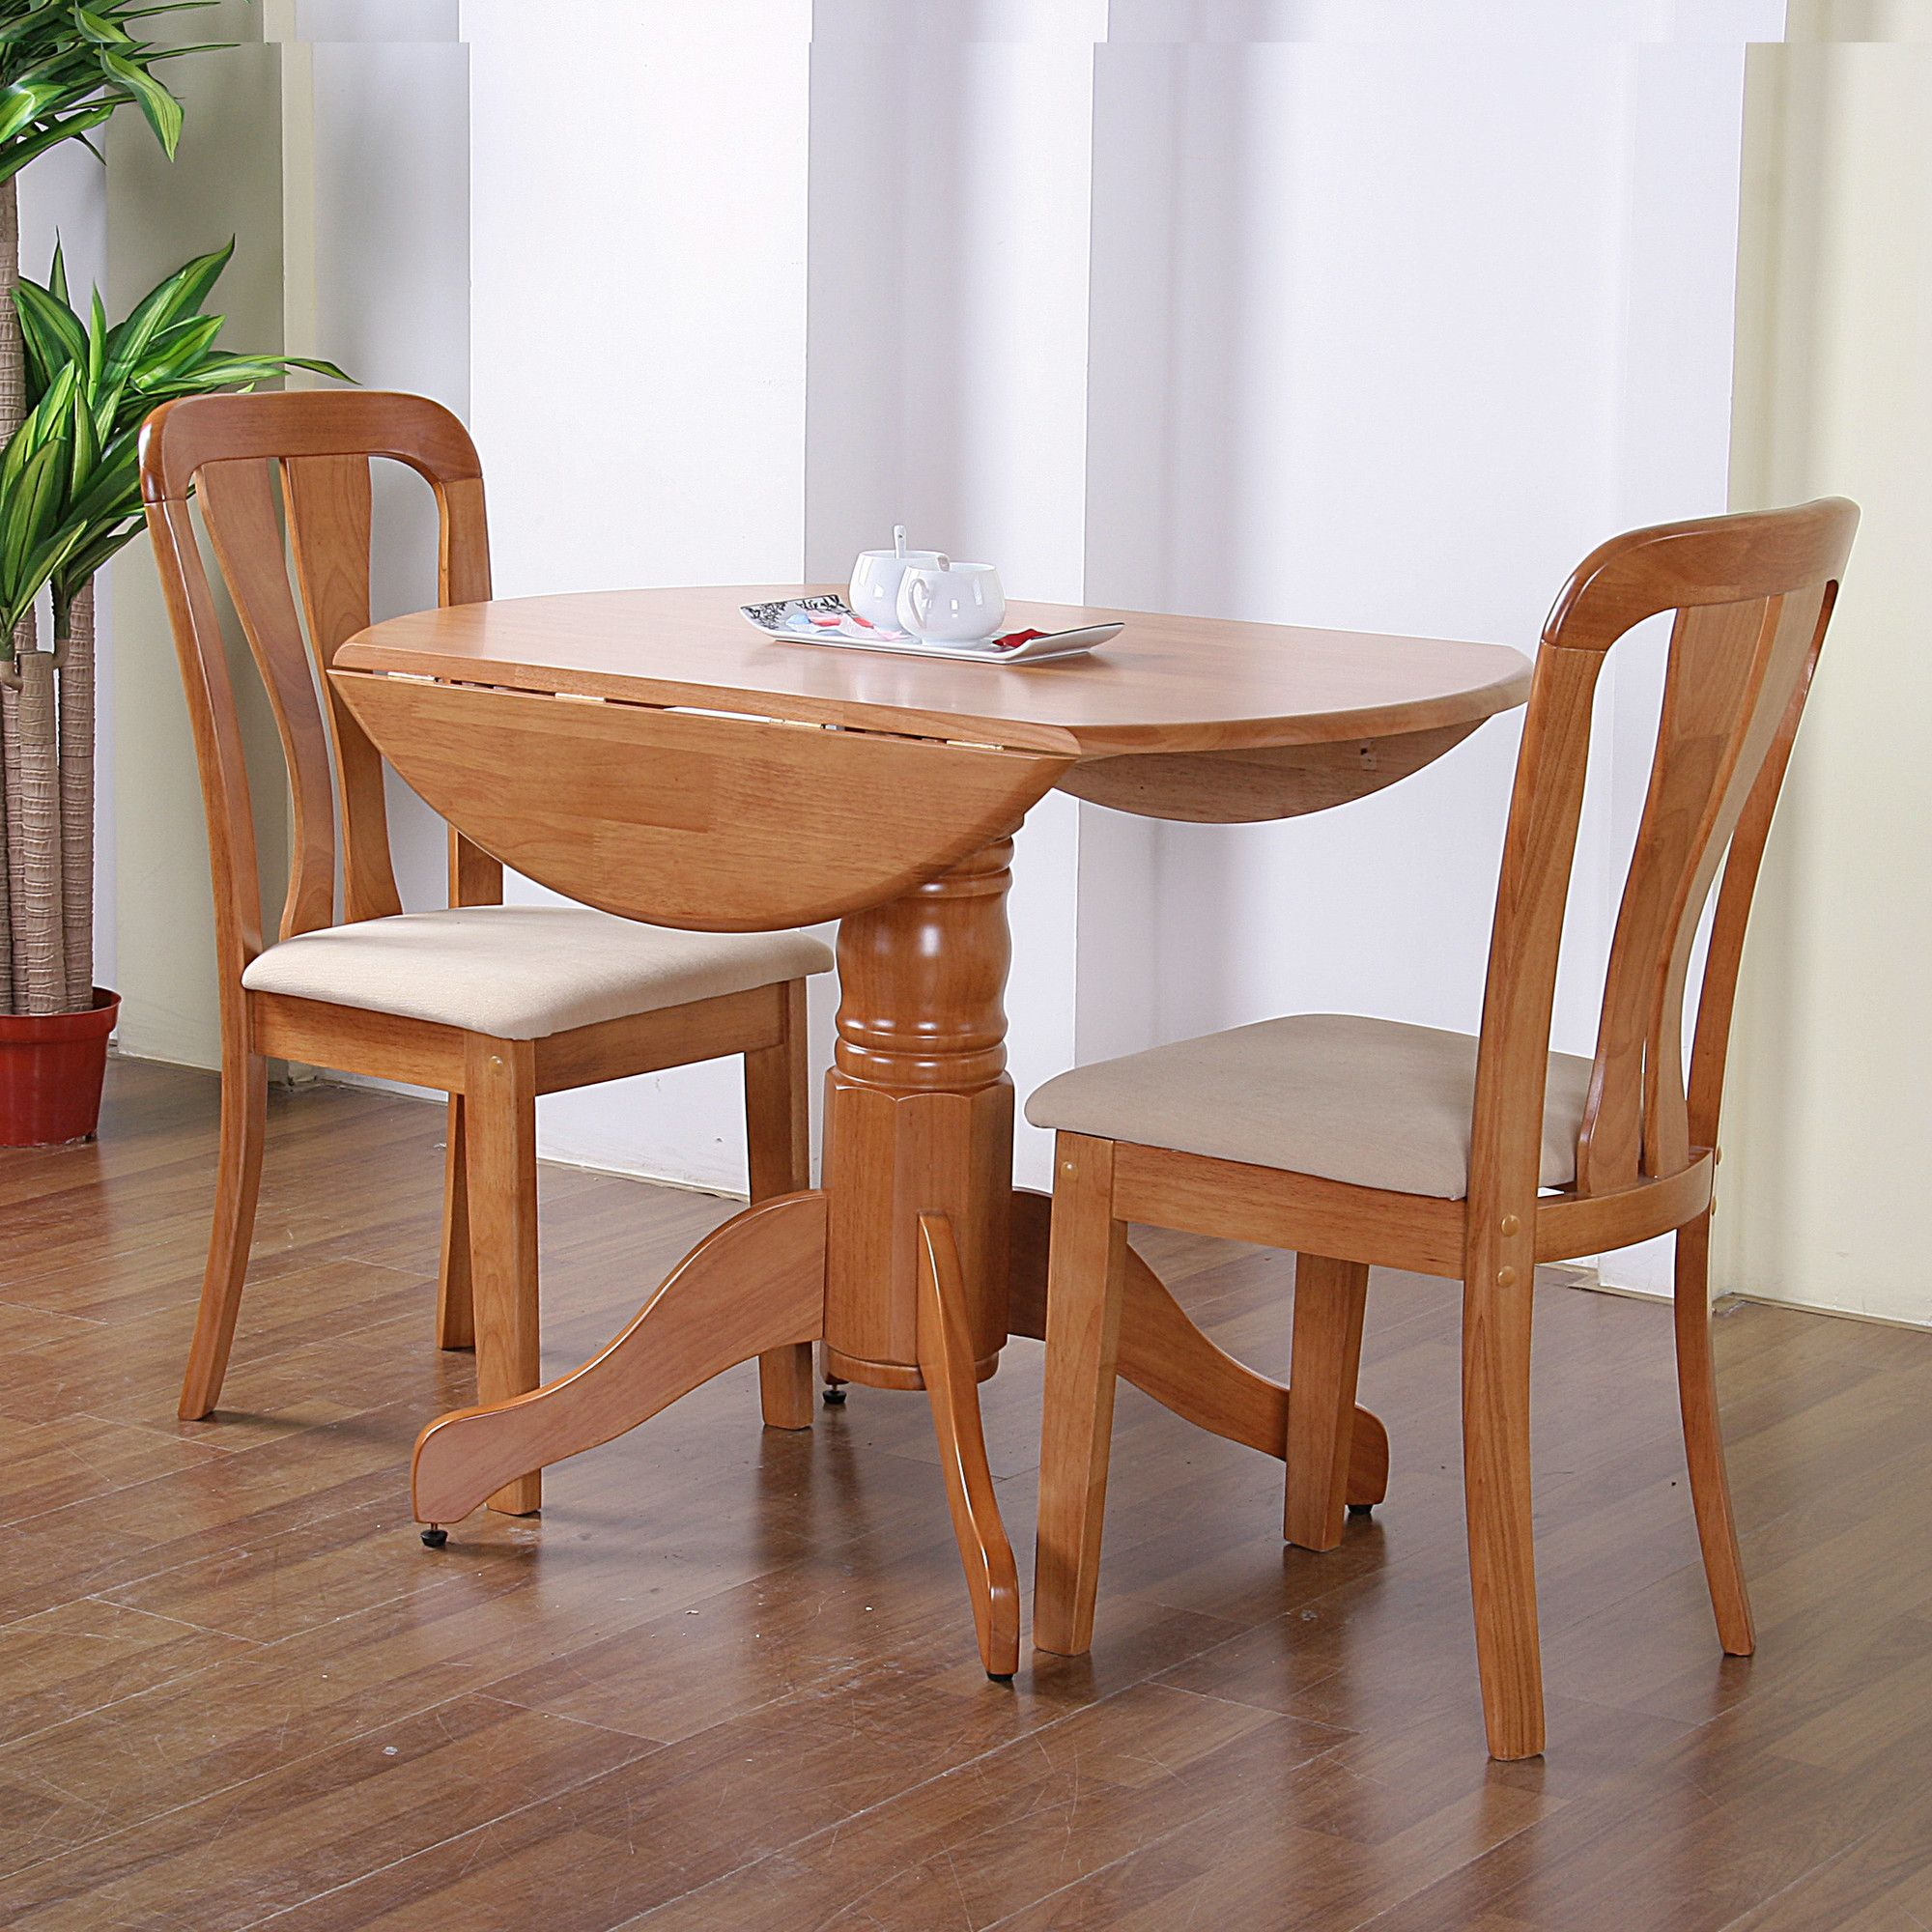 G&P Furniture Windsor House 3-Piece Bristol Round Drop Leaf Dining Set - Maple at Tesco Direct